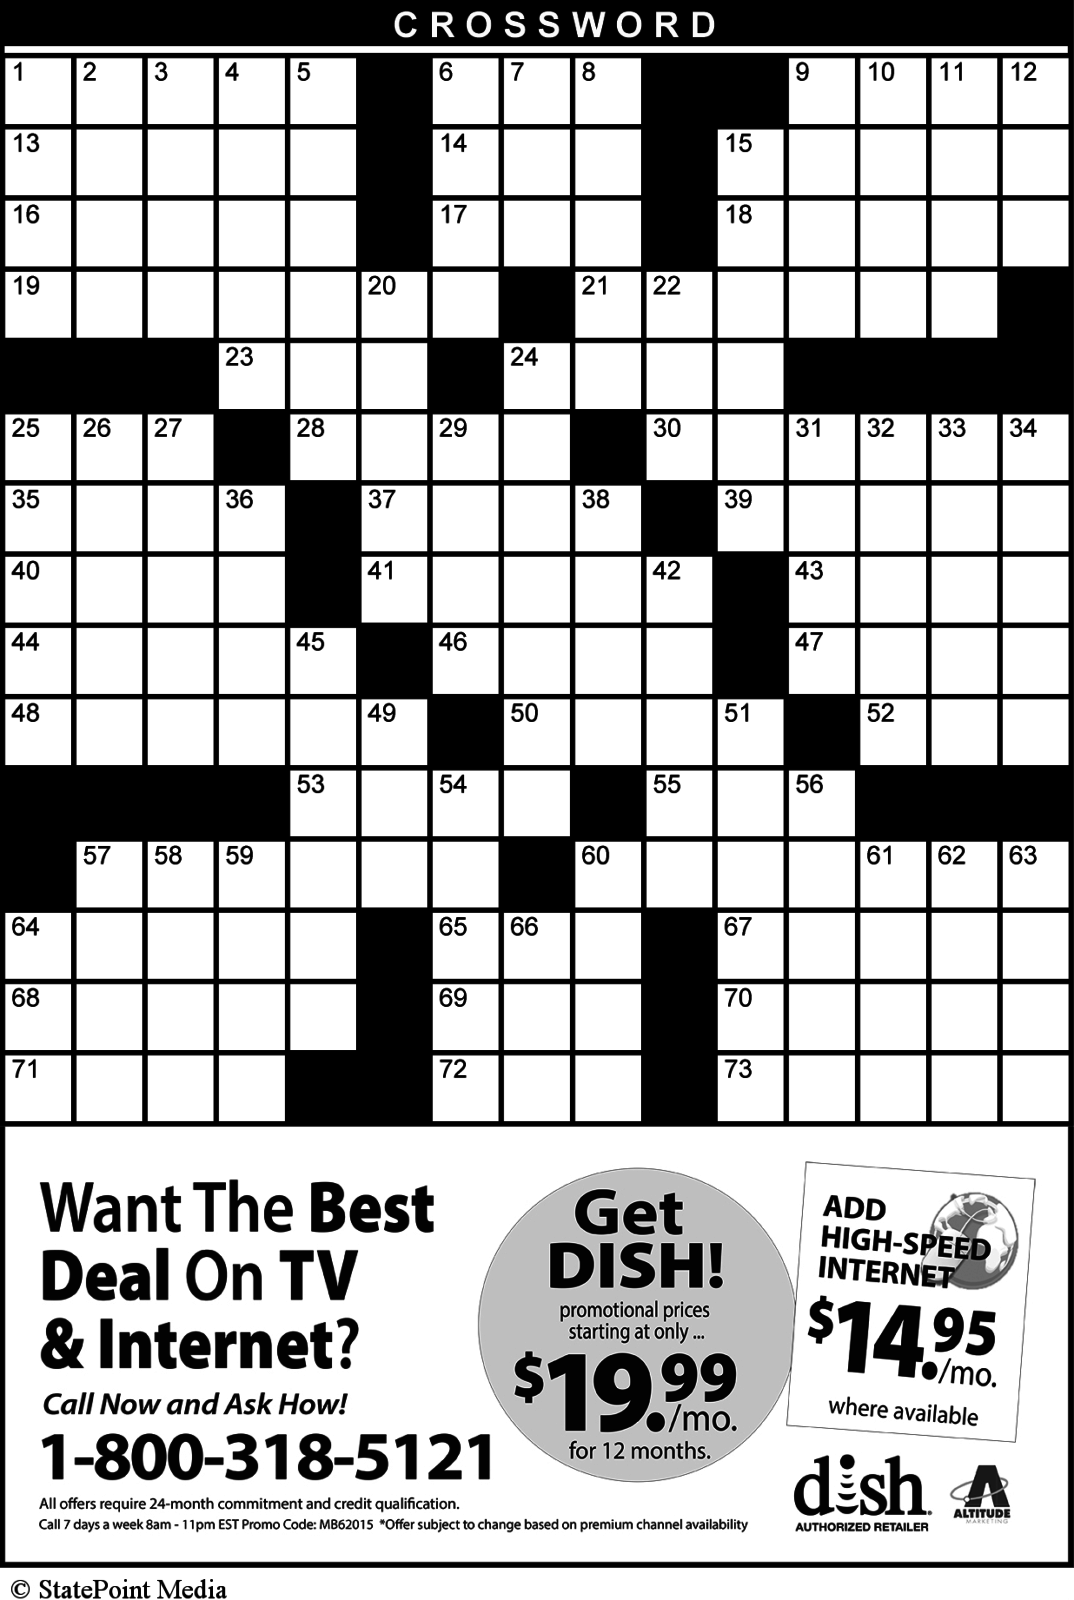 Competitor Of The North Face Crossword Clue